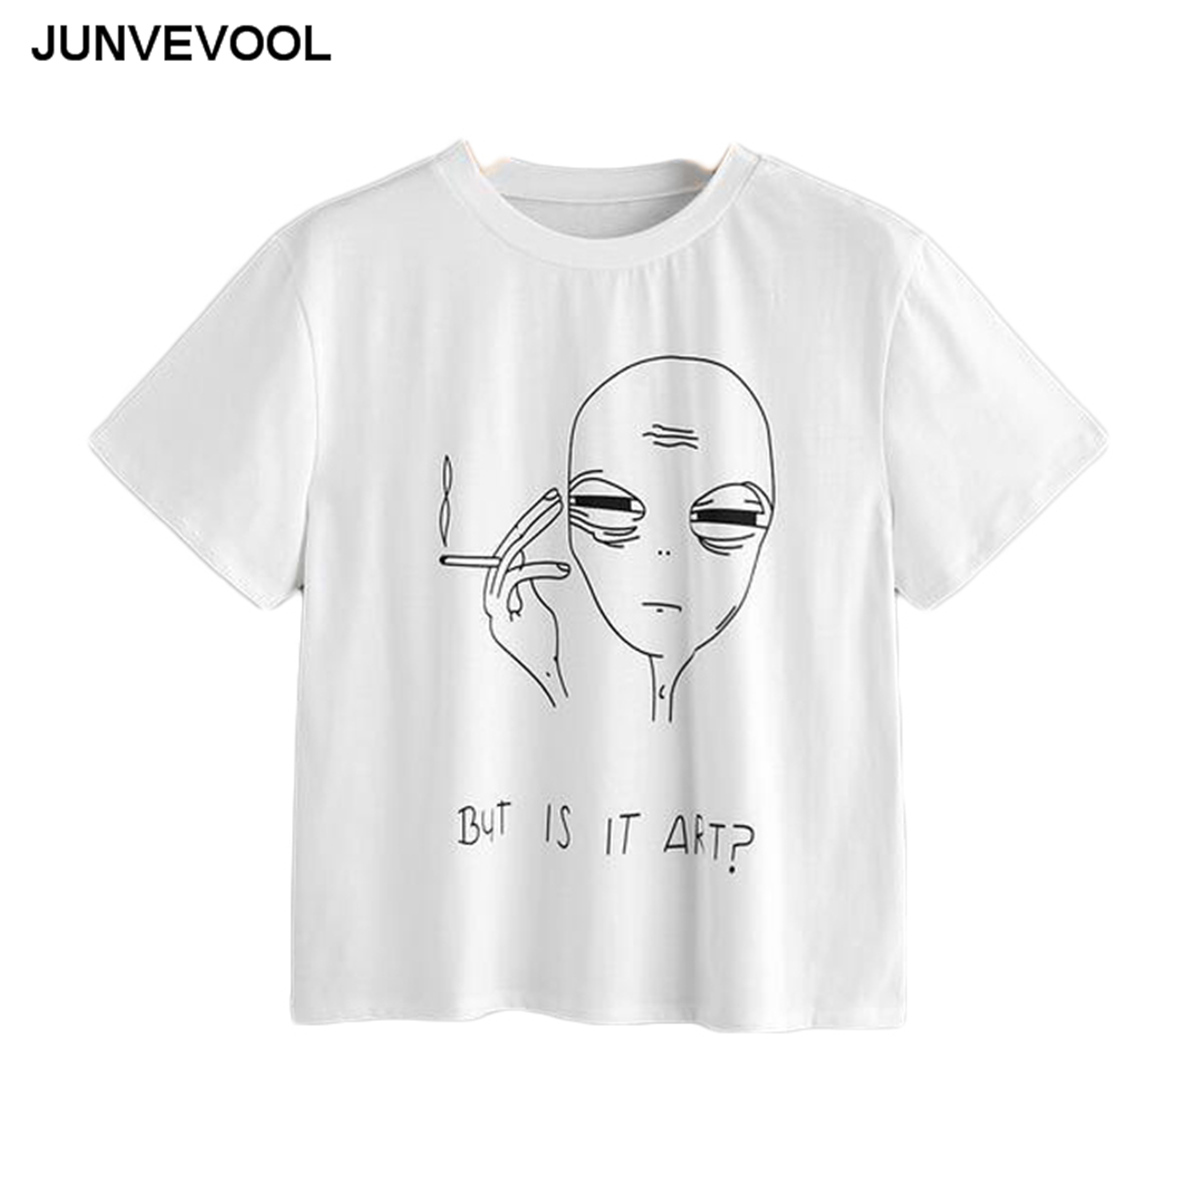 5dd0c929be1 Buy alien tee shirt and get free shipping on AliExpress.com